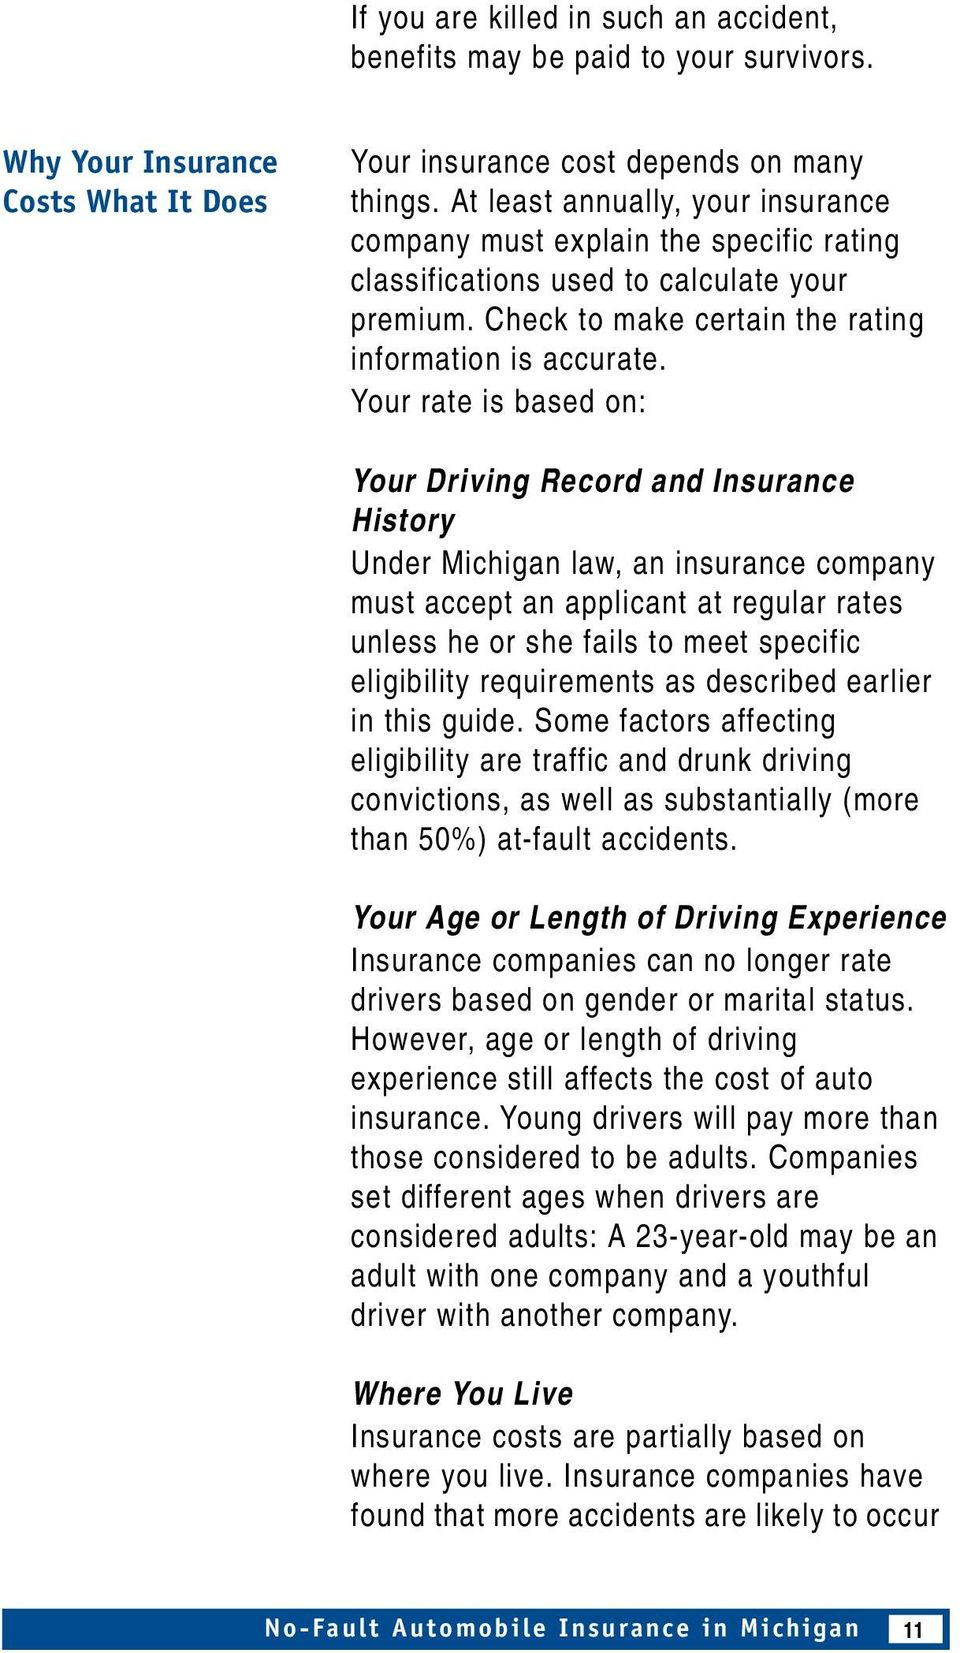 Your rate is based on: Your Driving Record and Insurance History Under Michigan law, an insurance company must accept an applicant at regular rates unless he or she fails to meet specific eligibility